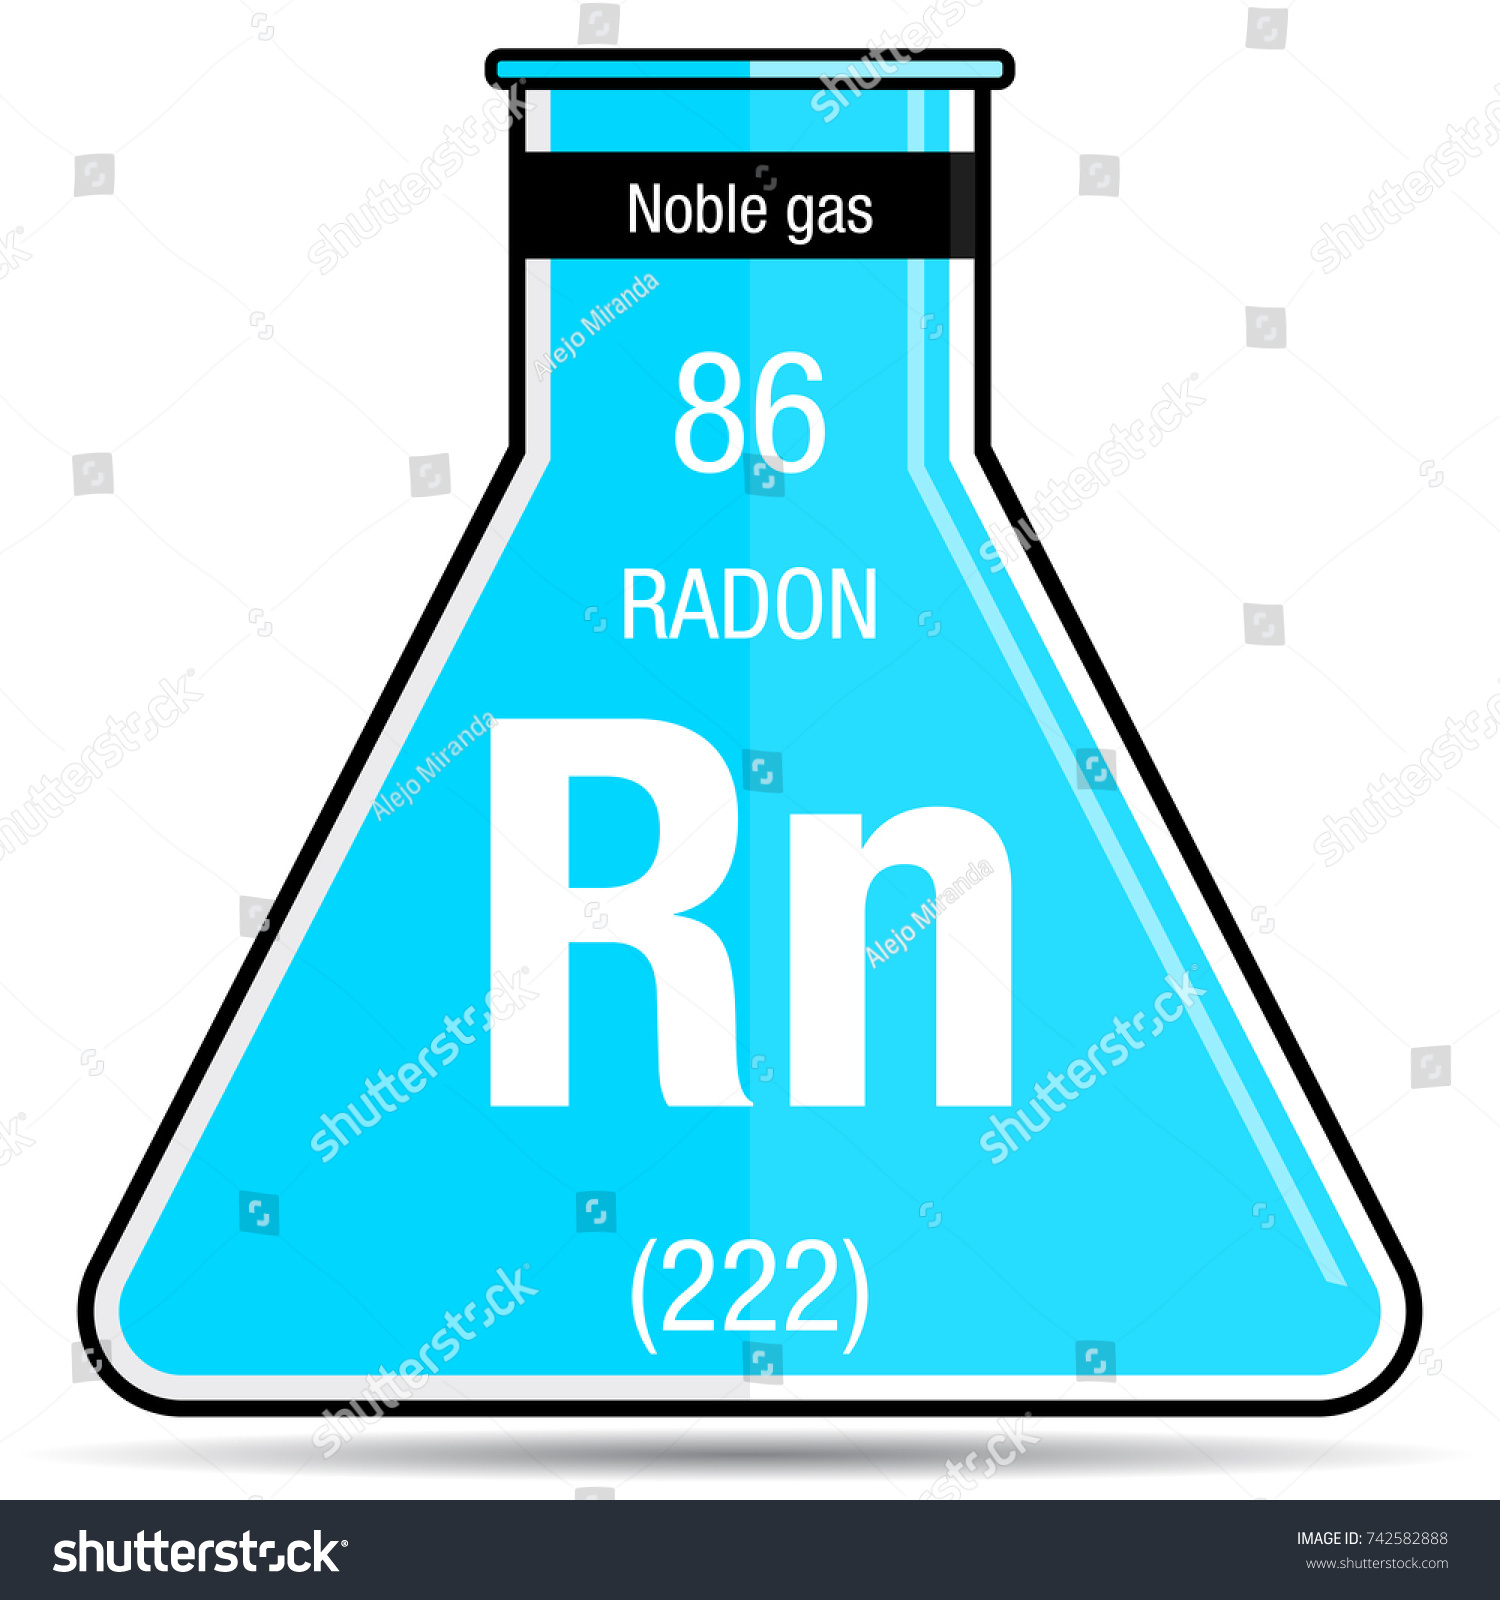 Radon on the periodic table images periodic table images radon symbol on chemical flask element stock vector 742582888 radon symbol on chemical flask element number gamestrikefo Choice Image